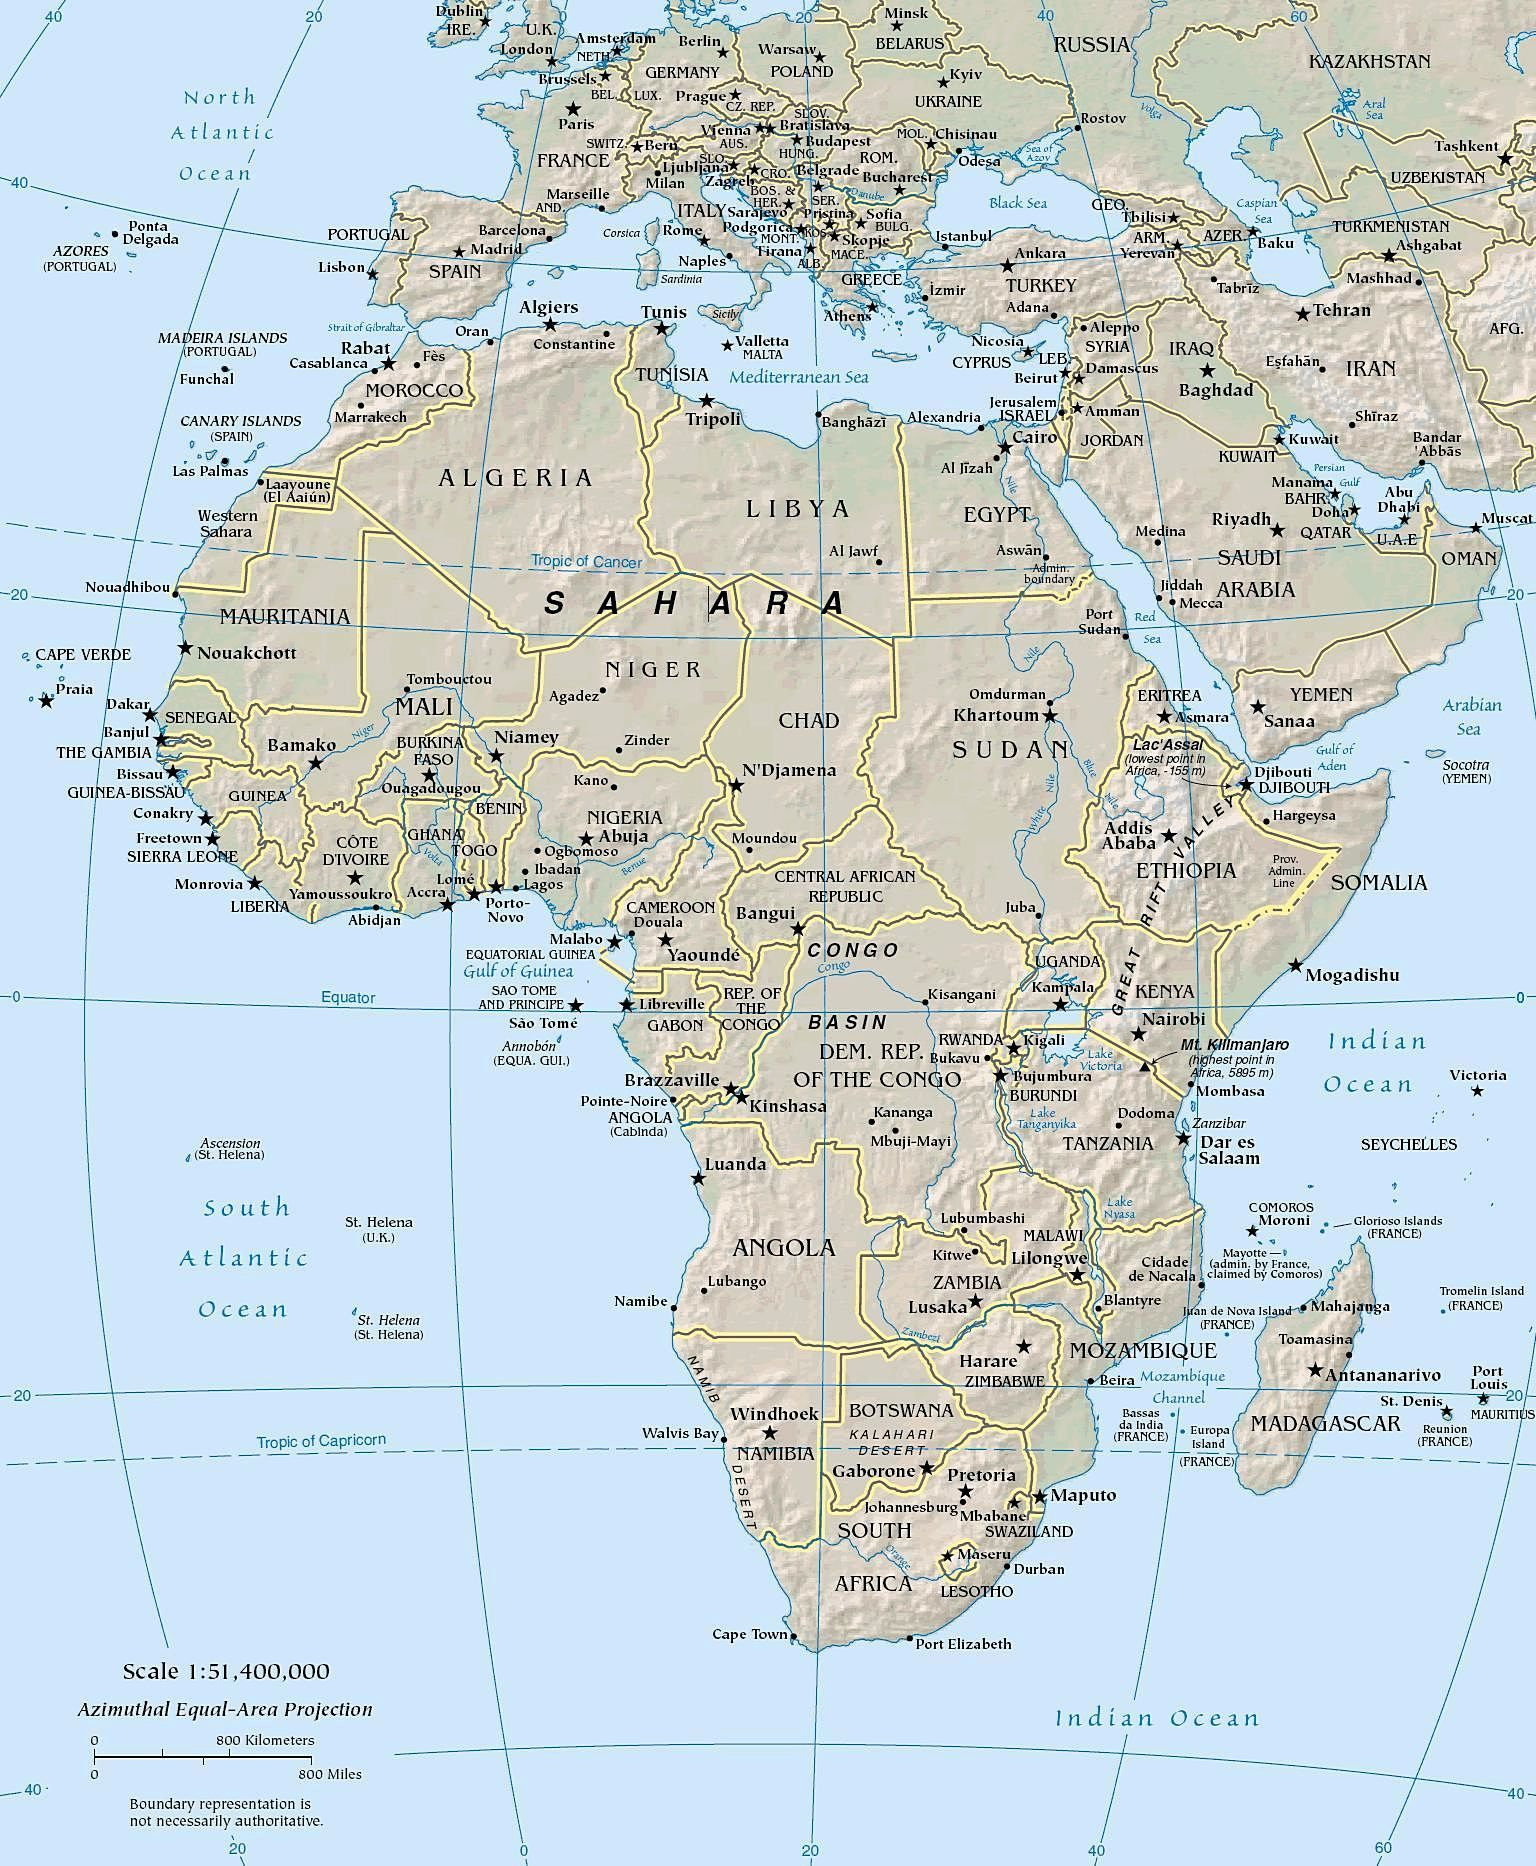 Geography For Kids African Countries And The Continent Of Africa - Africa physical map countries